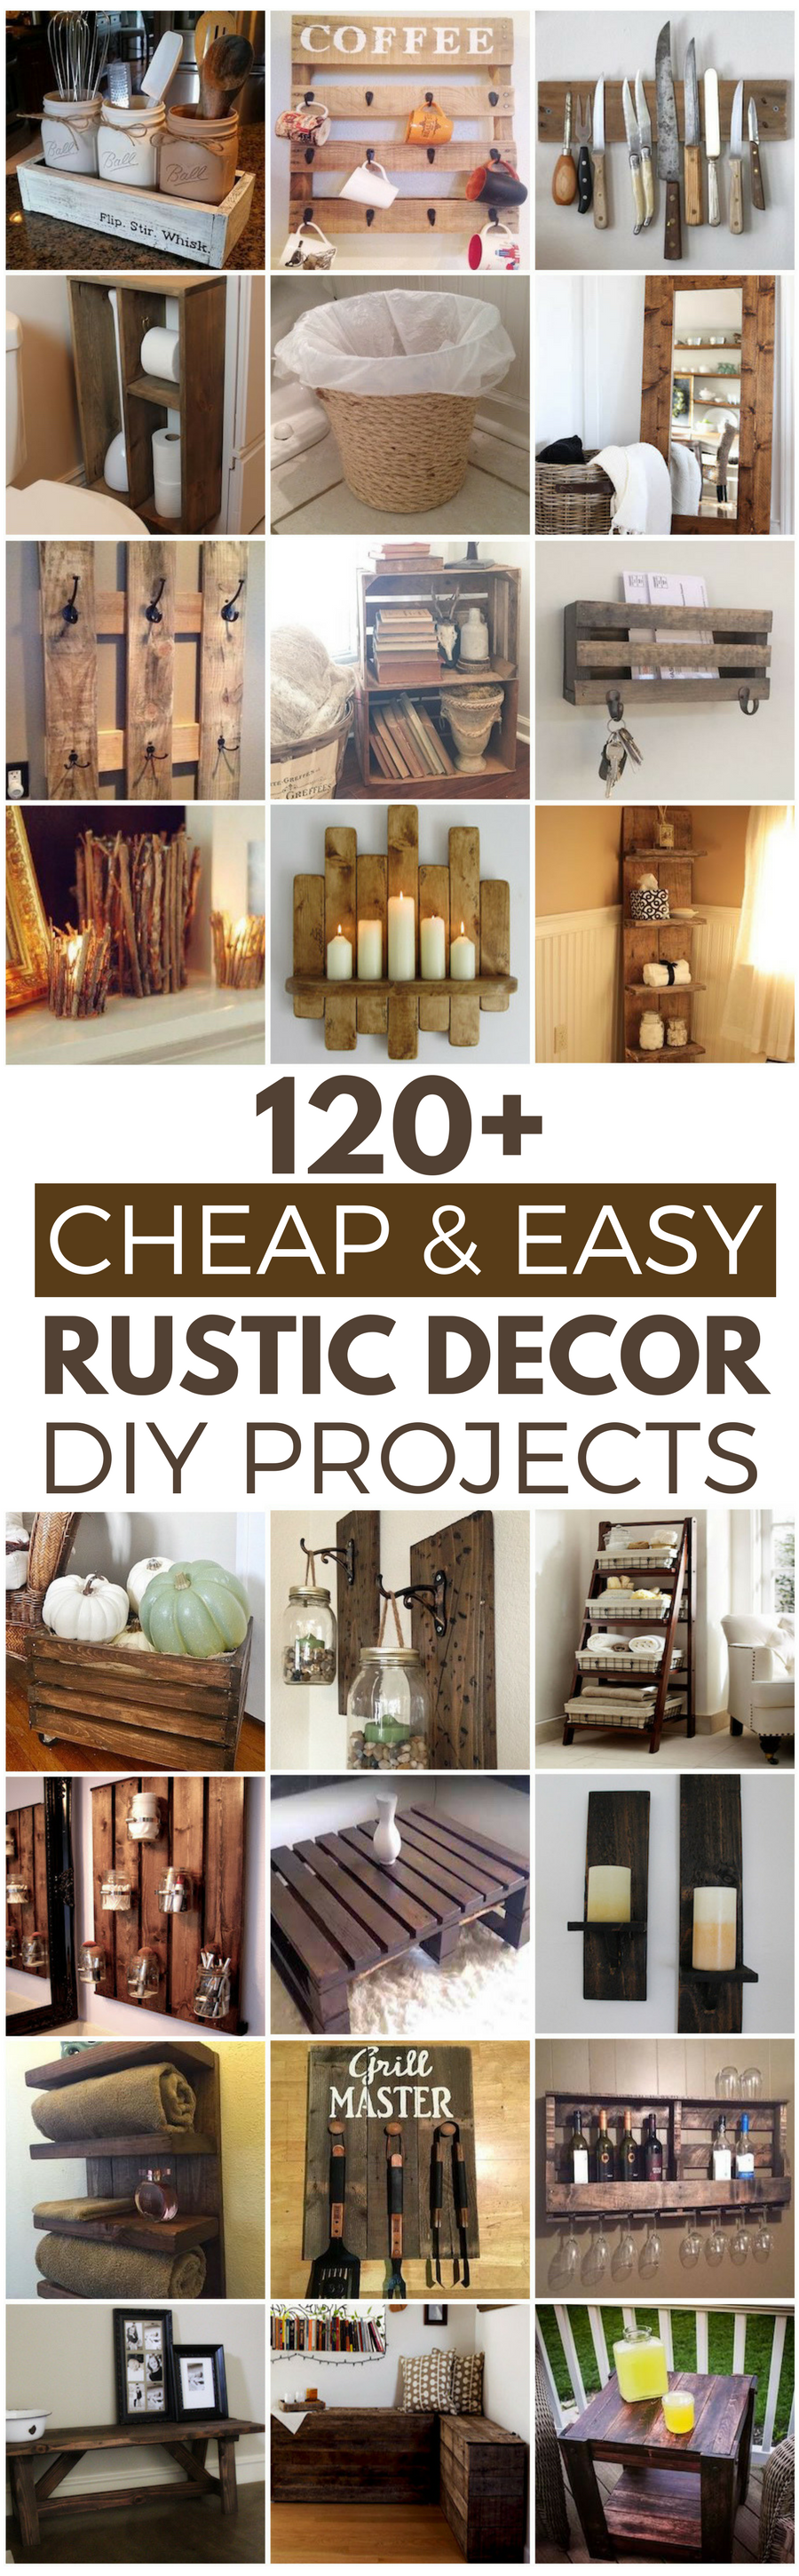 120 Cheap And Easy Rustic Diy Home Decor Diy Decor Projects Diy Rustic Decor Cheap Home Decor